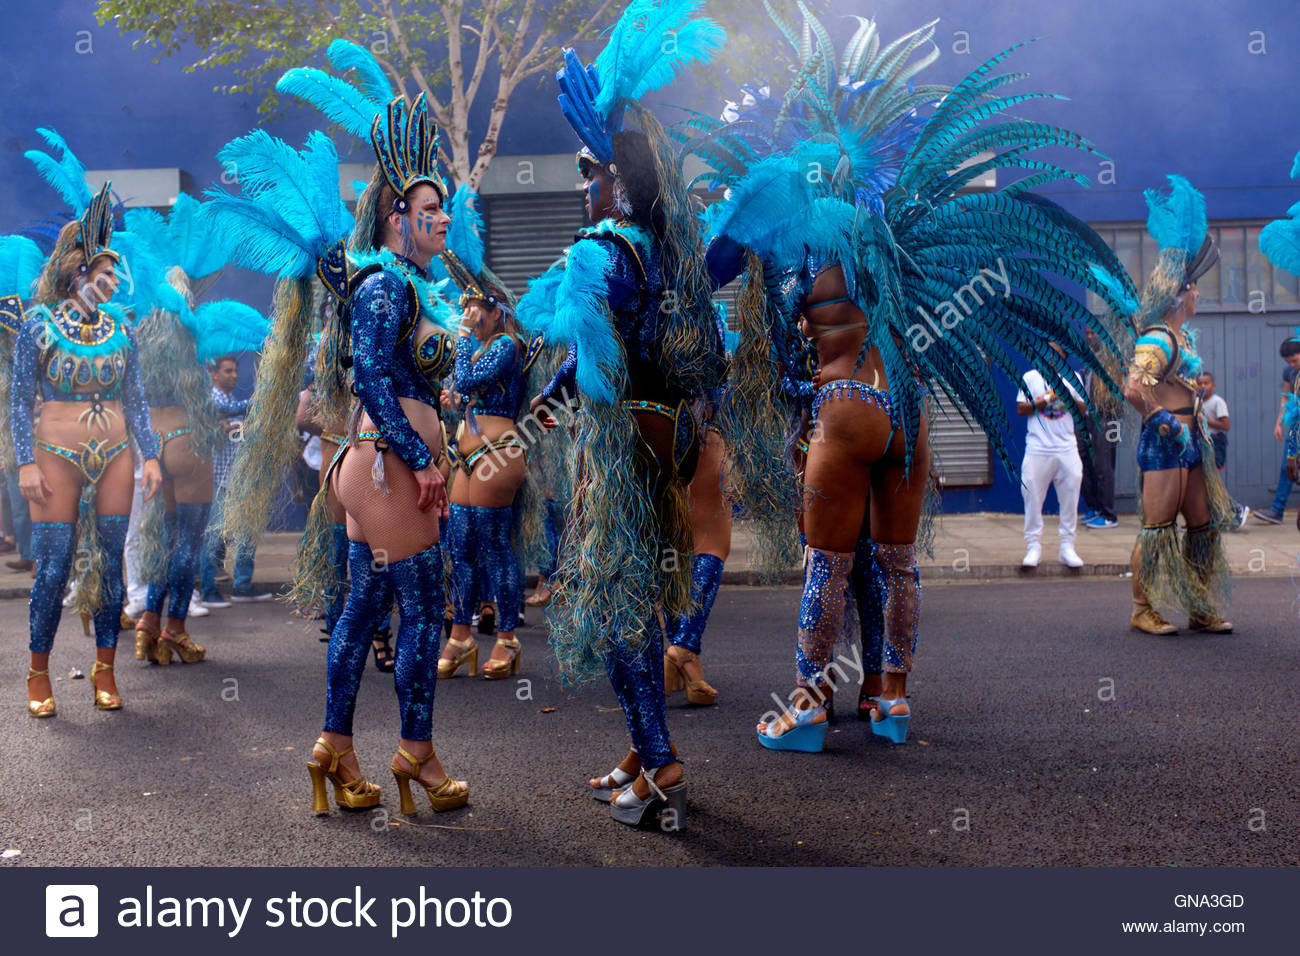 Women wearing exotic costumes with plumage as they prepare for the 50th Notting Hill Carnival, London, August 29 - Stock Image